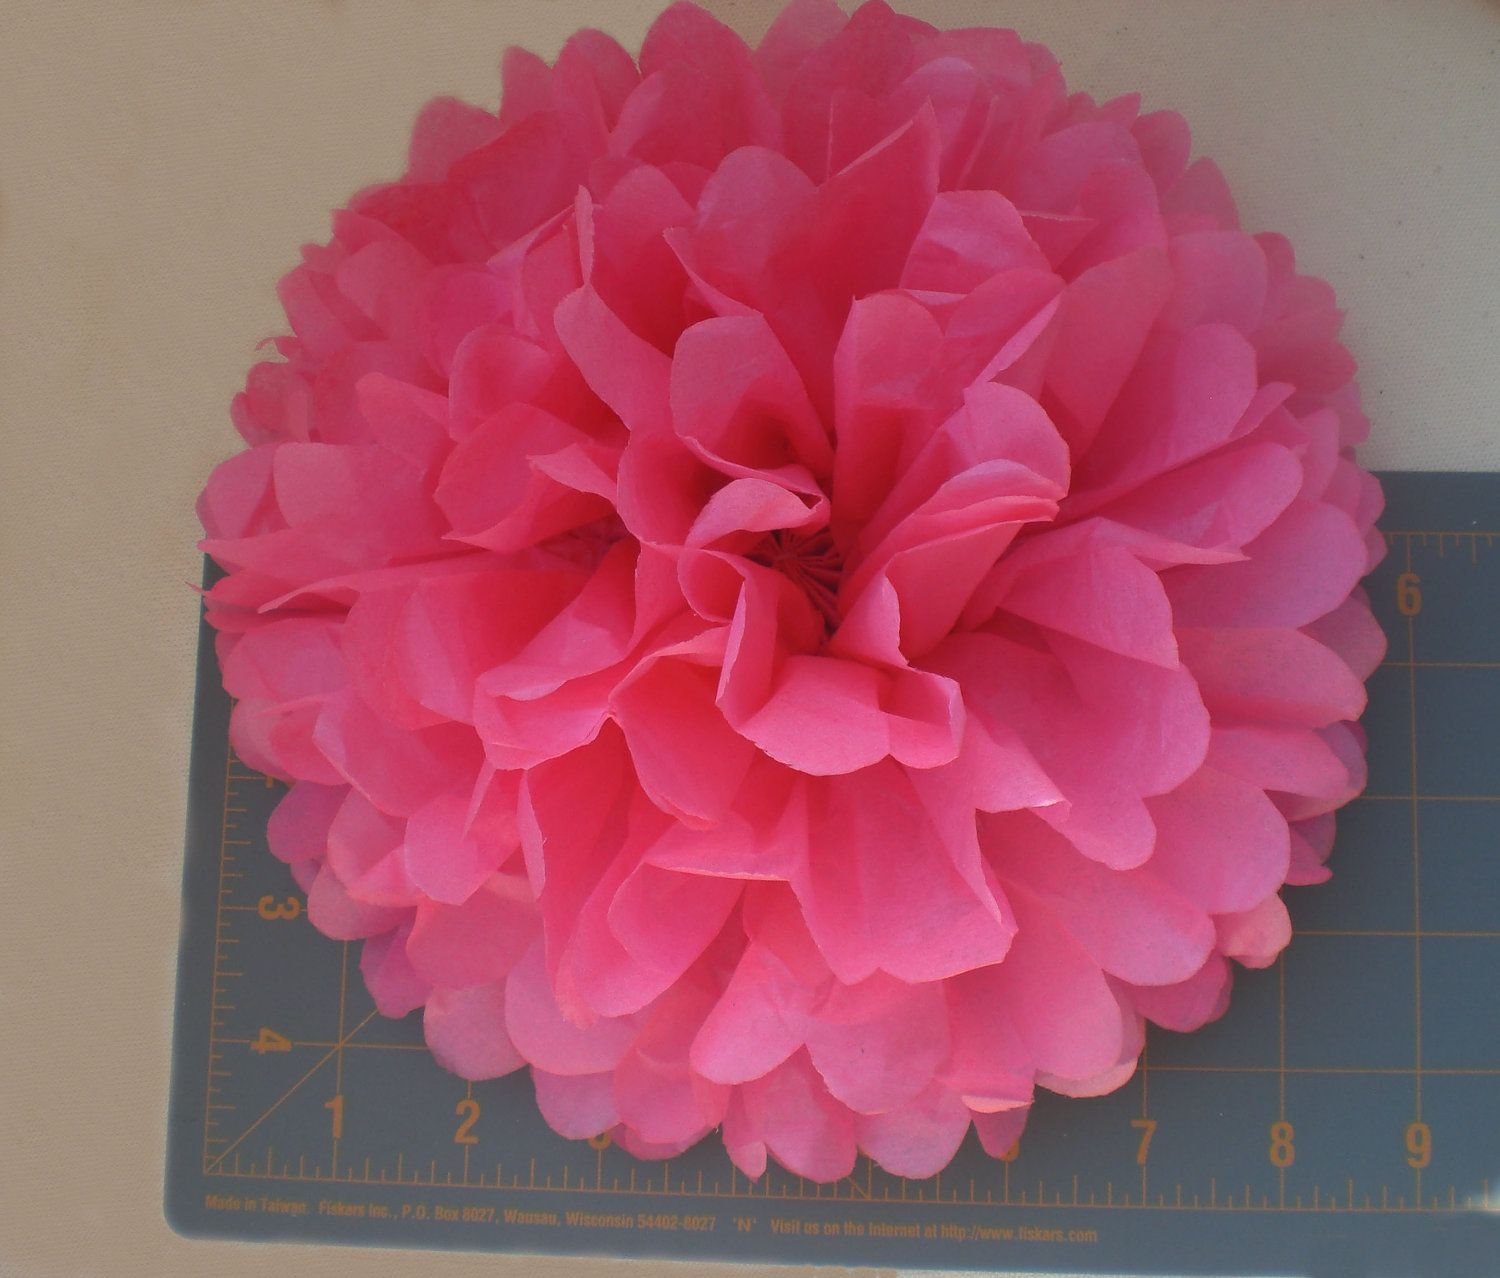 Centerpiece large 9 tissue paper flowers 7 rty wedding centerpiece large 9 tissue paper flowers 7 rty wedding mightylinksfo